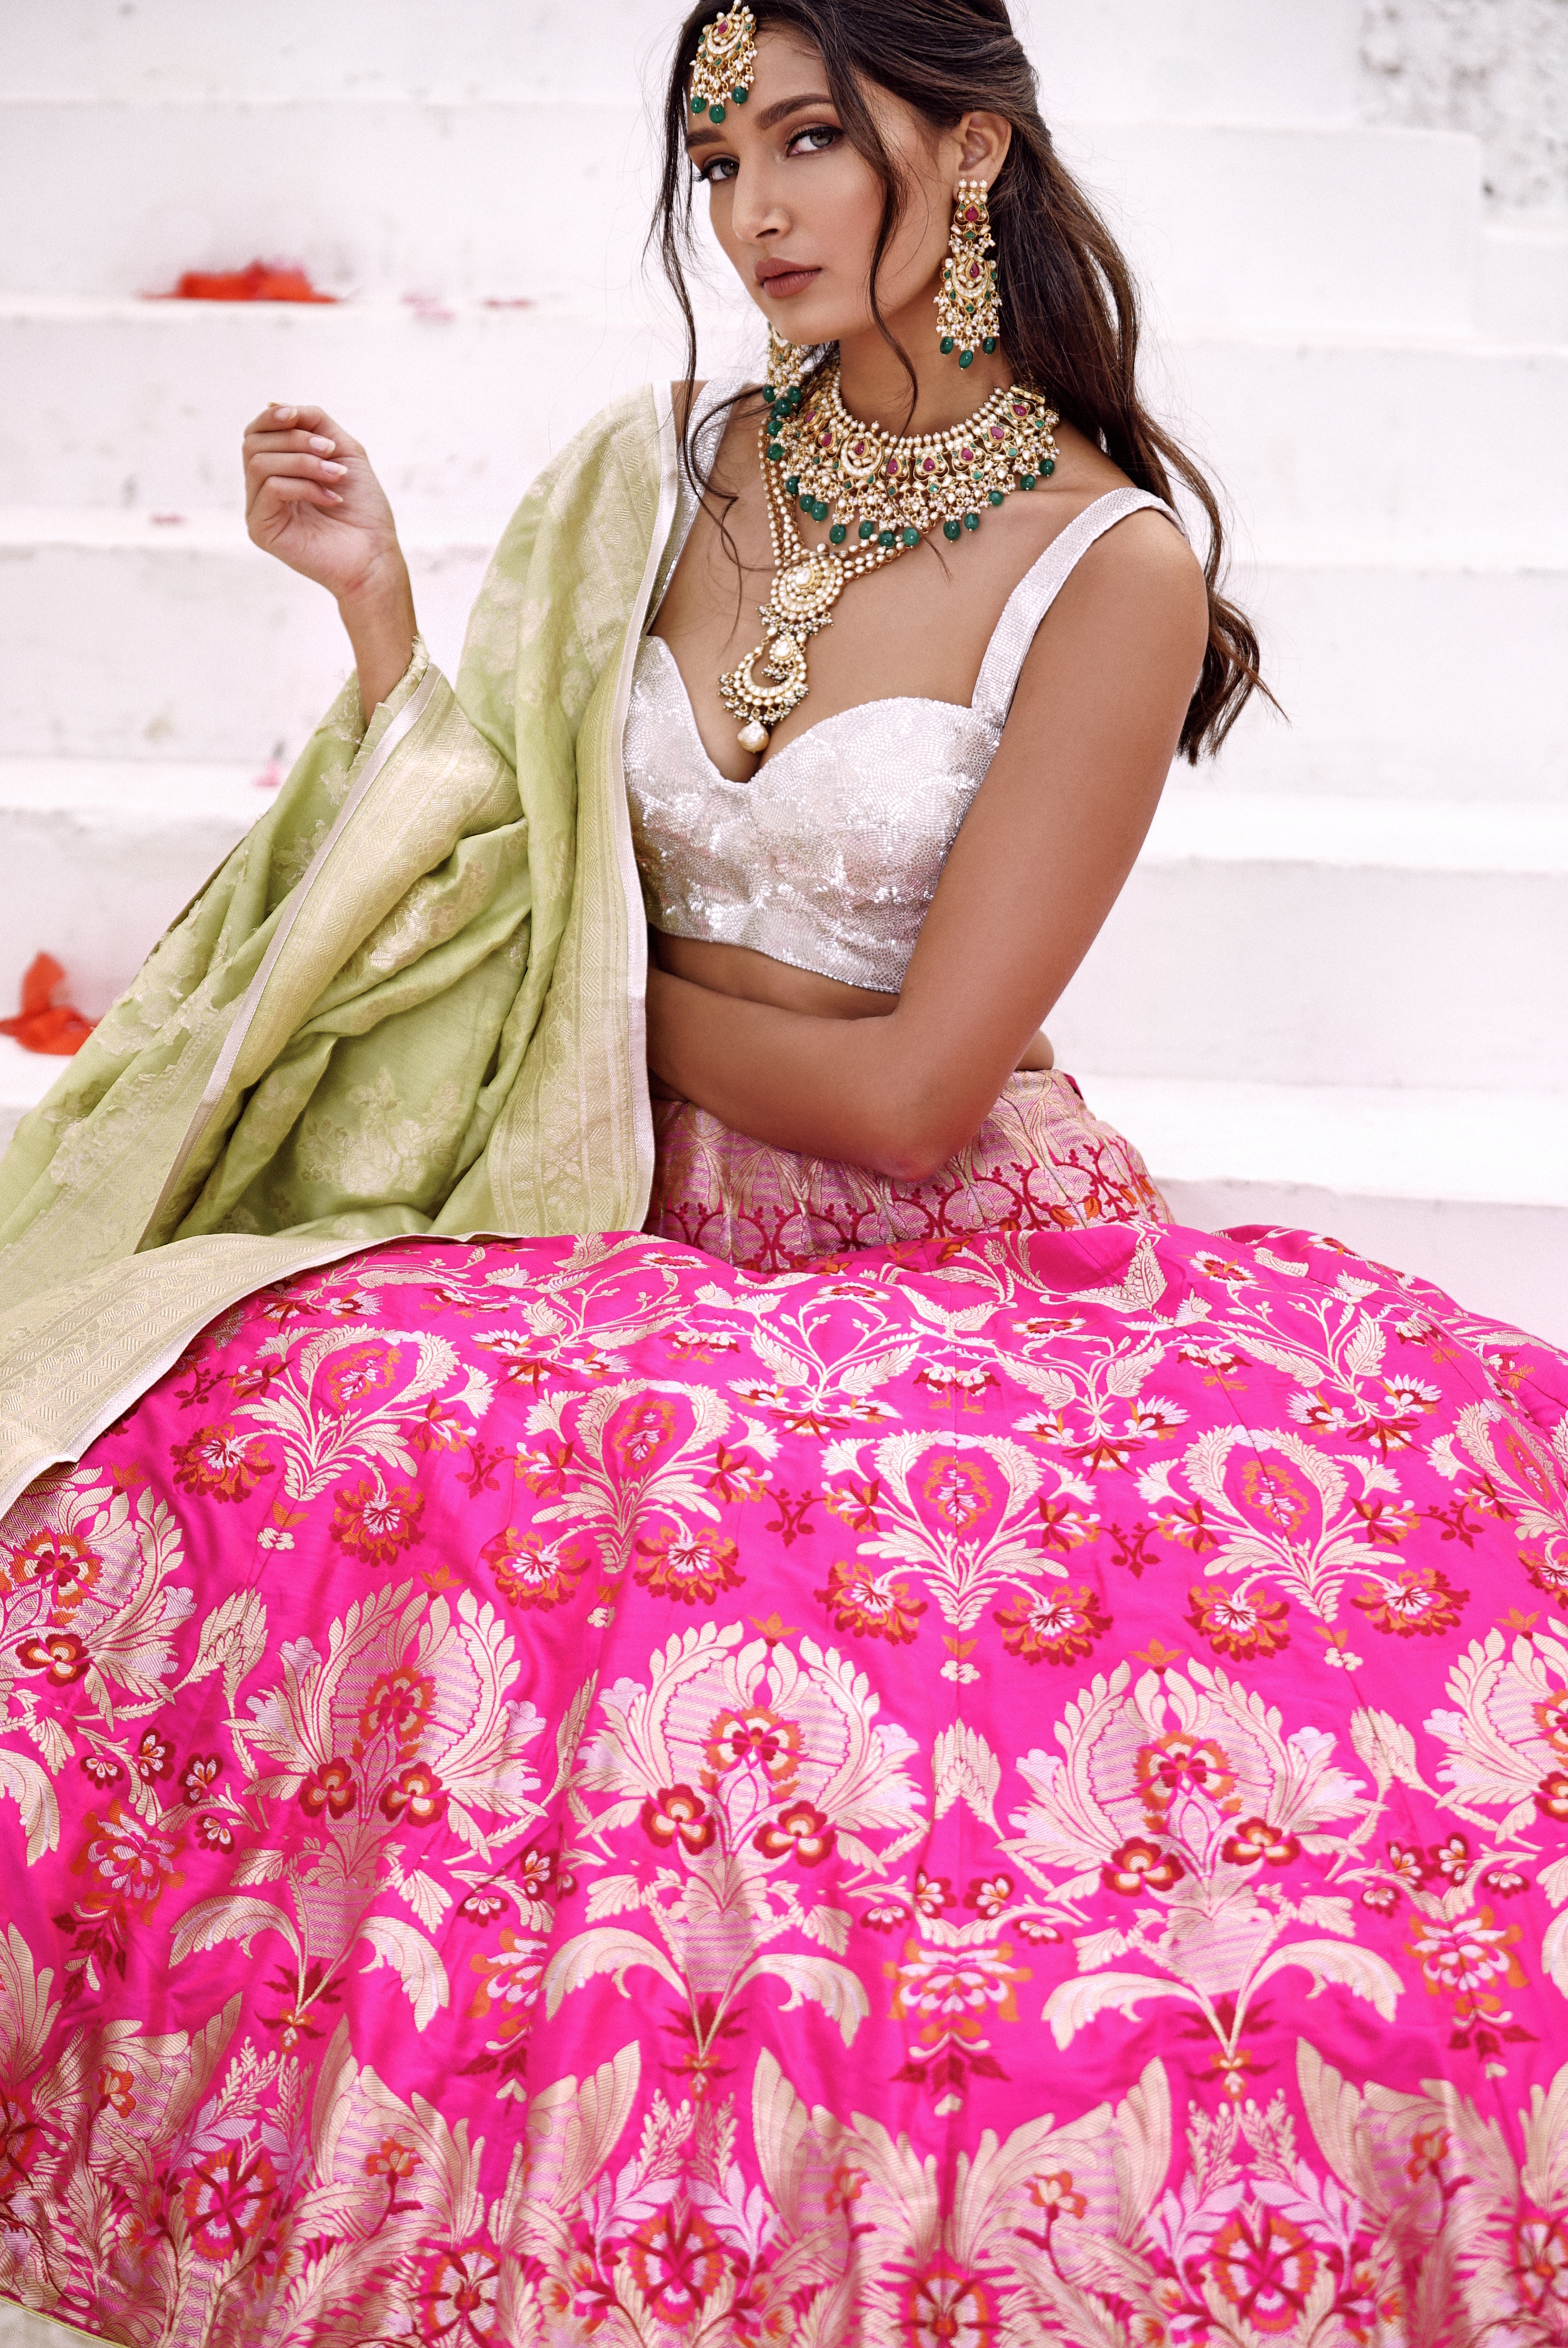 bride in pink outfit